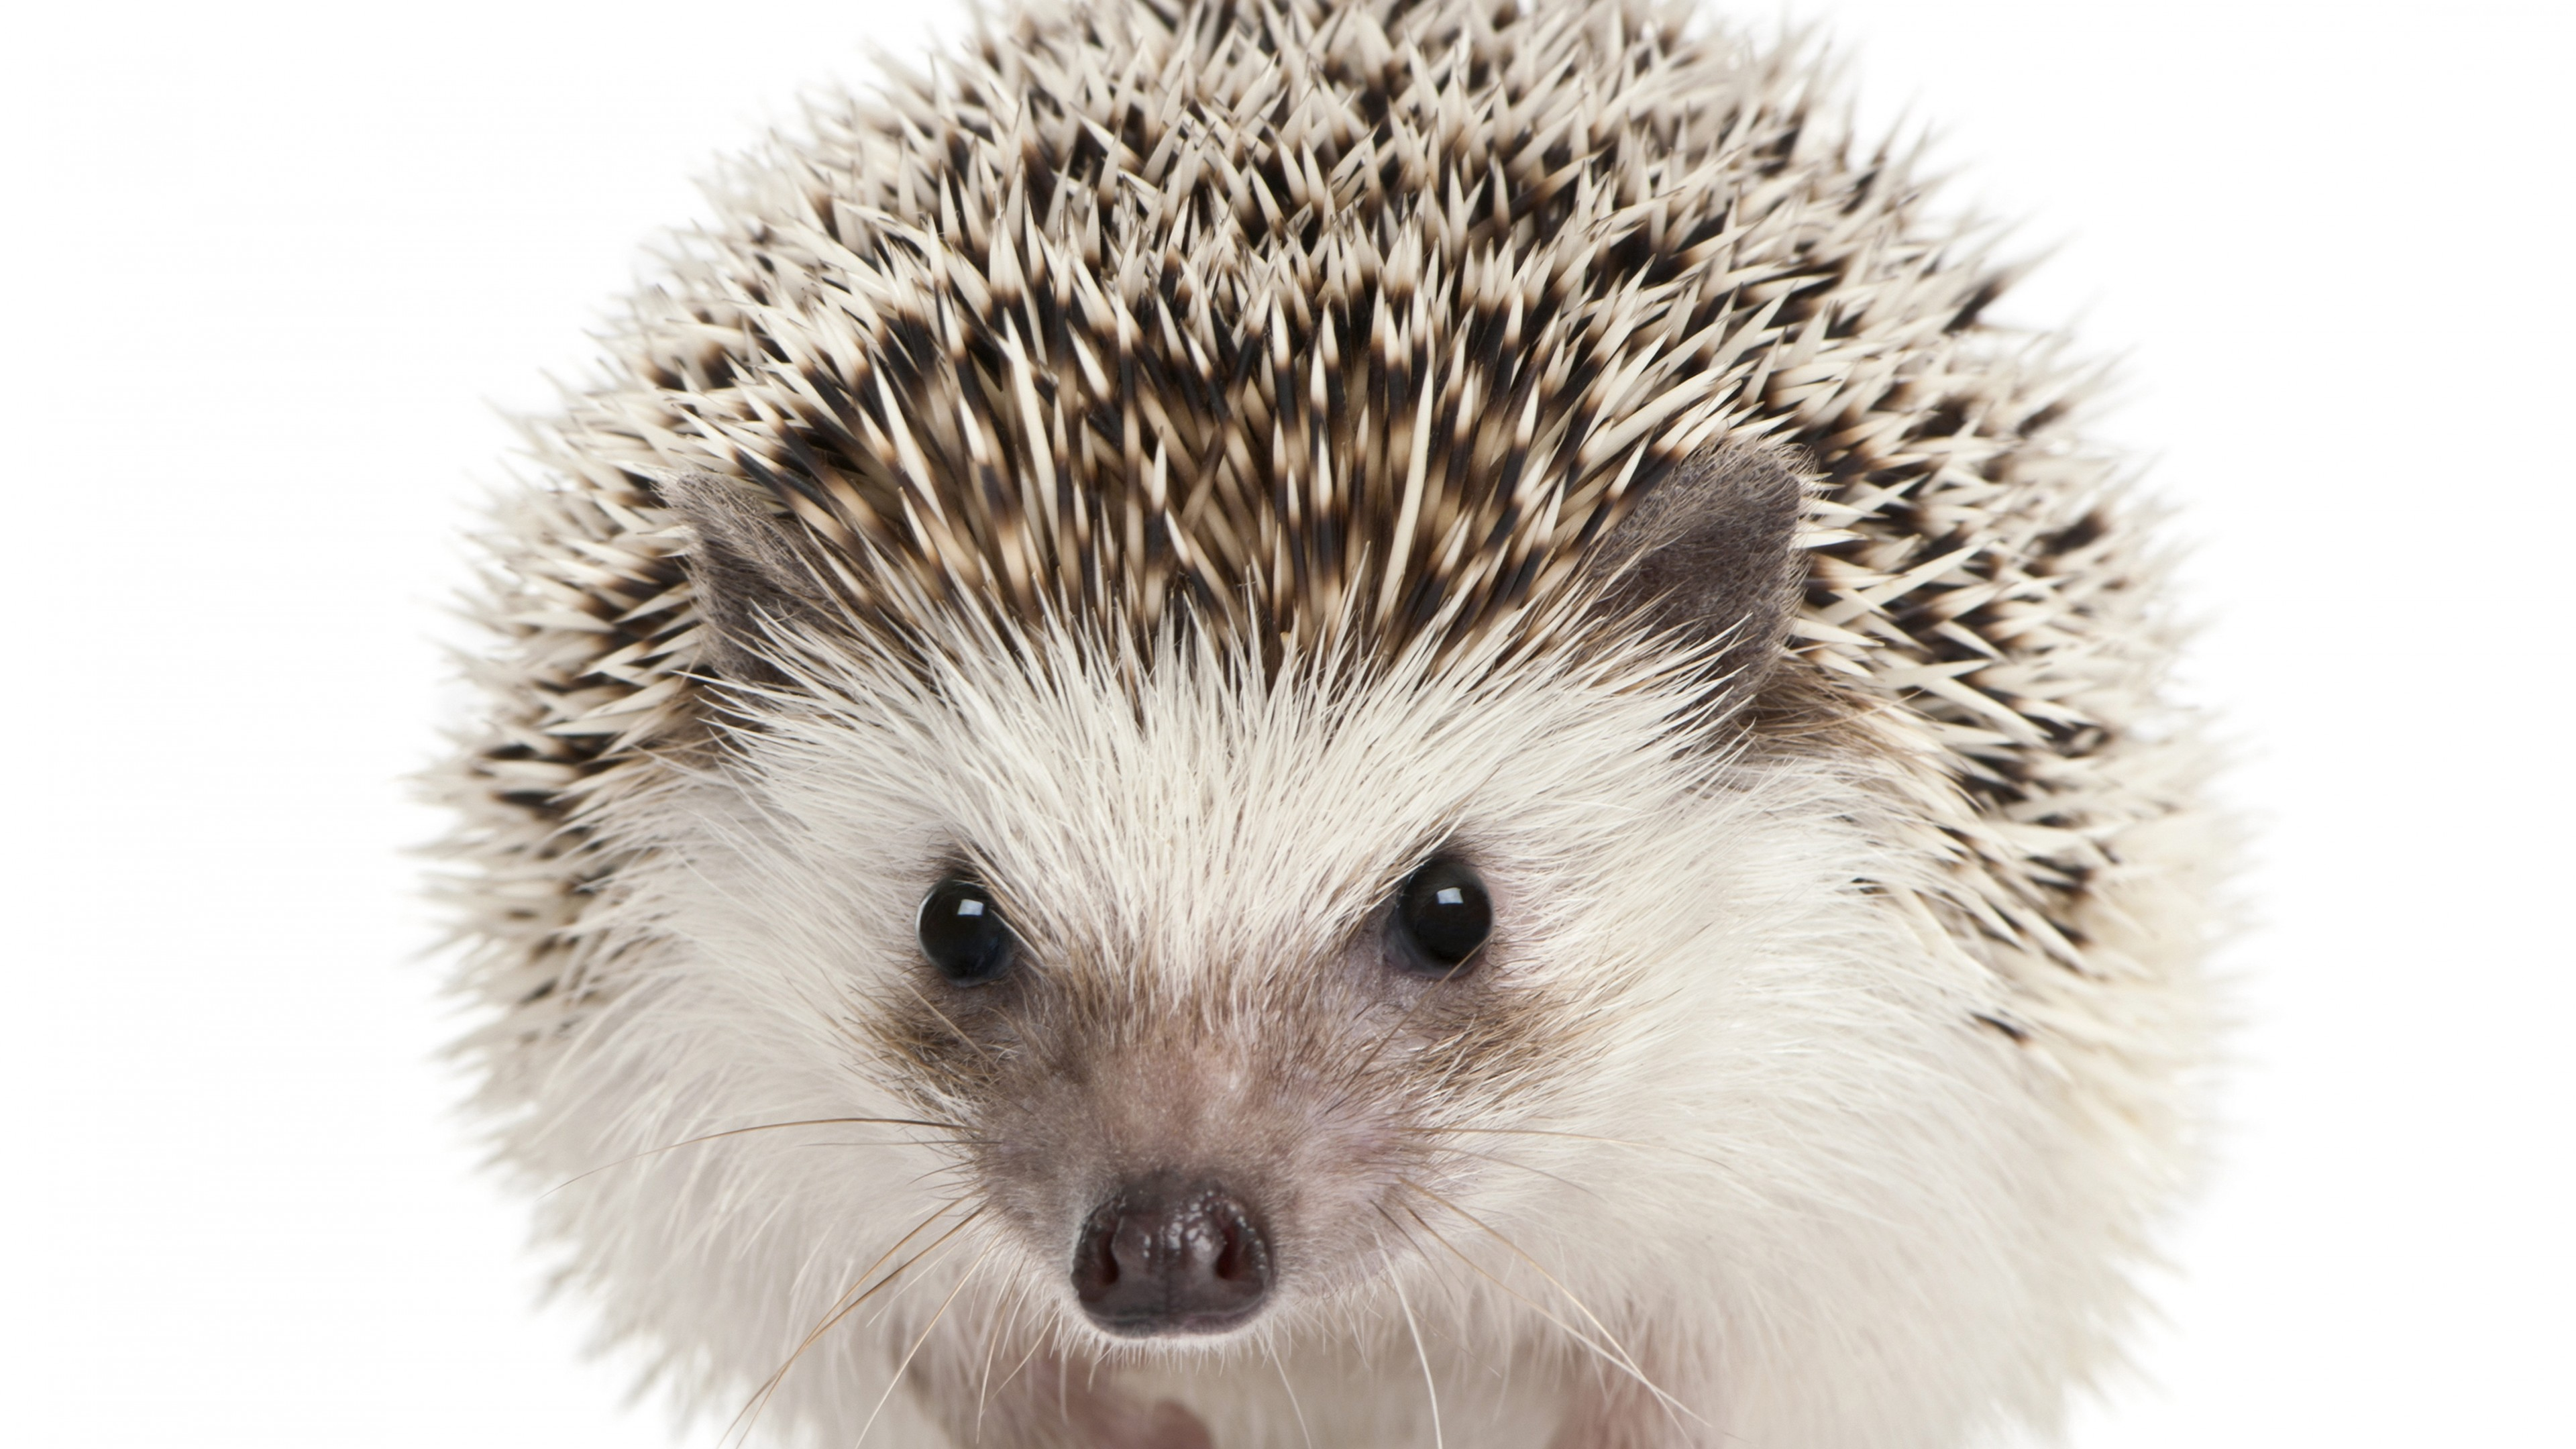 Stock Images hedgehog, cute animals, 5k, Stock Images